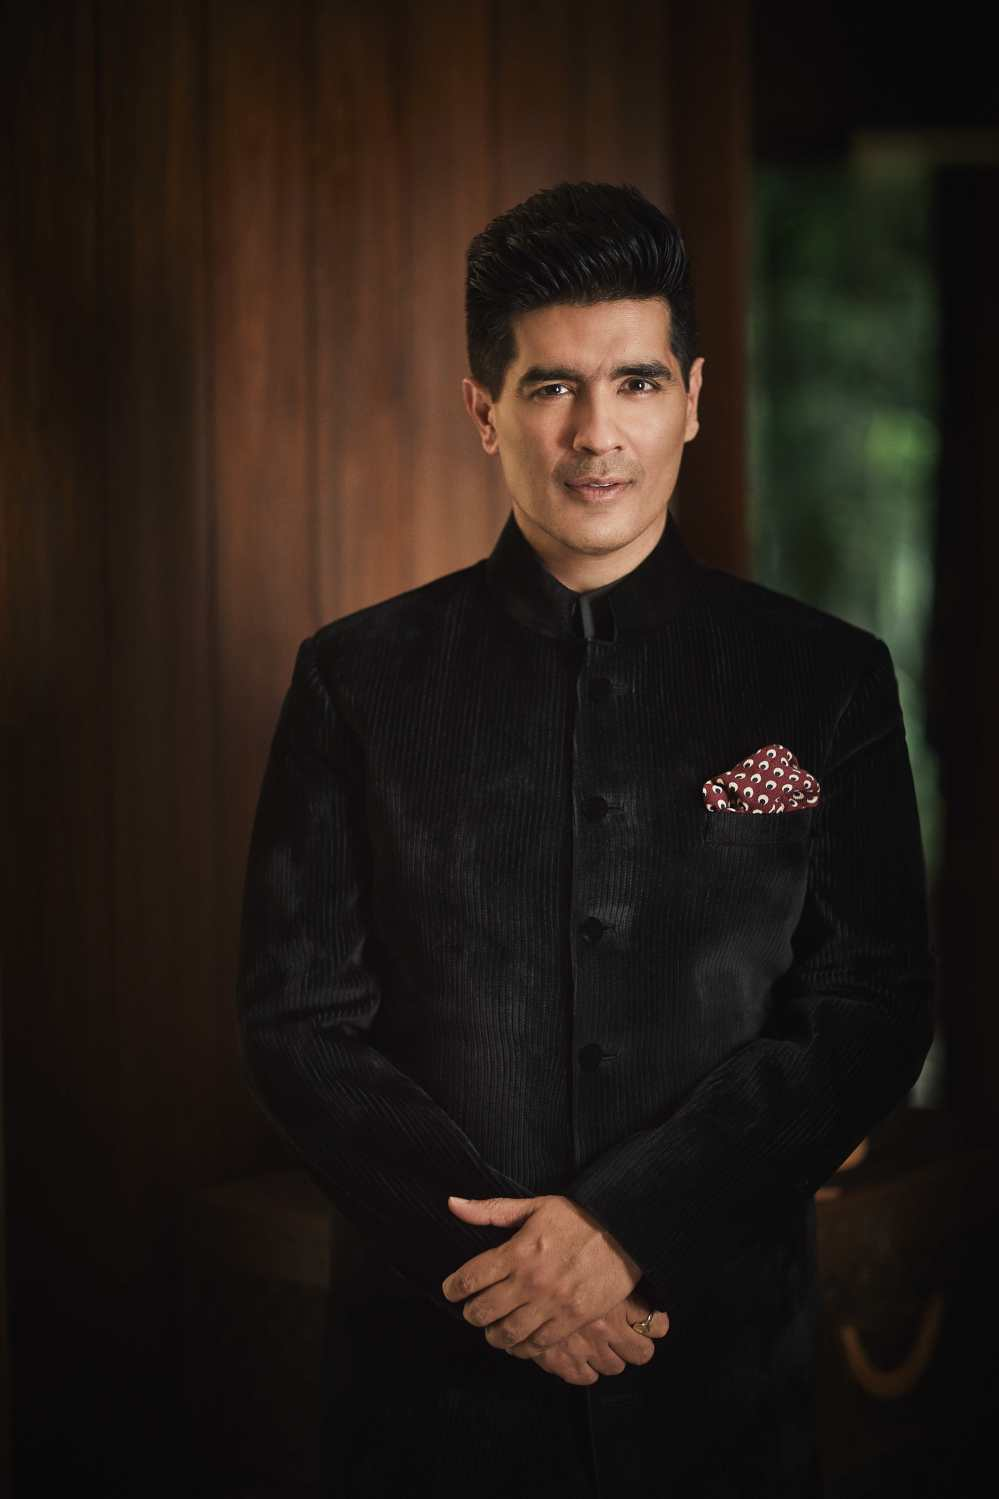 EBH presents the THINK PINK Ball 2019 London with celebrated Indian designer Manish Malhotra